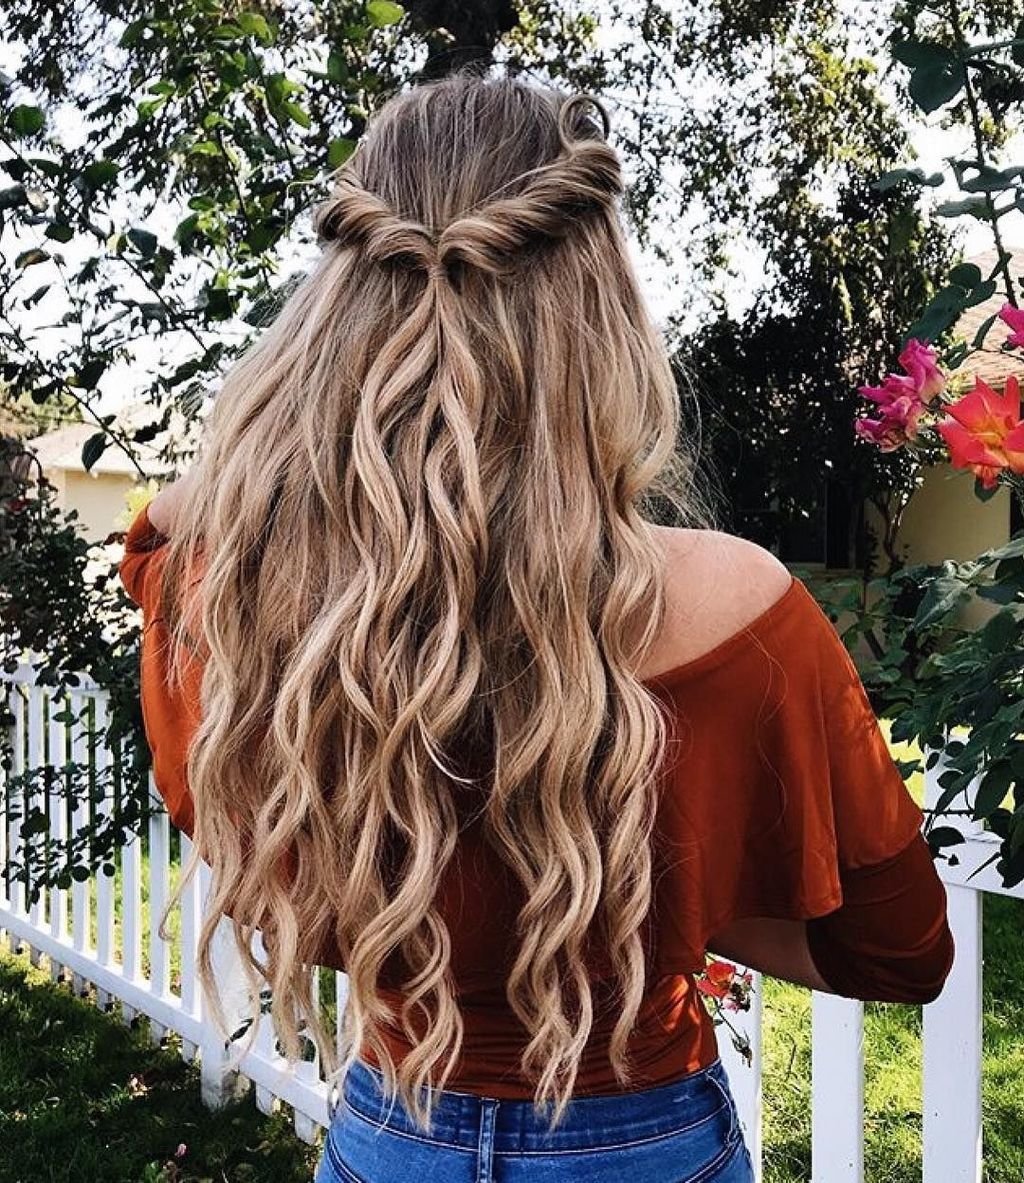 beautiful long curly hairstyle inspirations hair and makeup uc